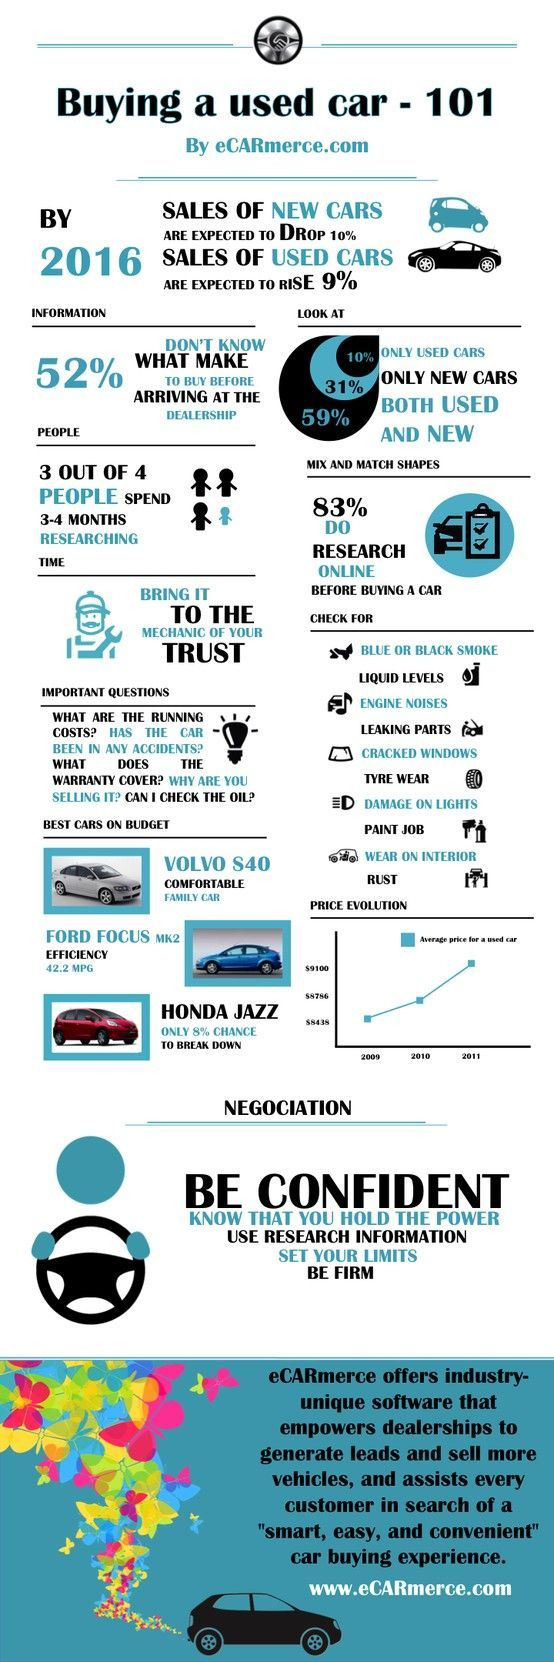 93 best saving money on car costs images on pinterest frugal tips educational infographic data infographic how to buy a used car tips on how to get a good deal and what to a image description infographic how to bu fandeluxe Choice Image